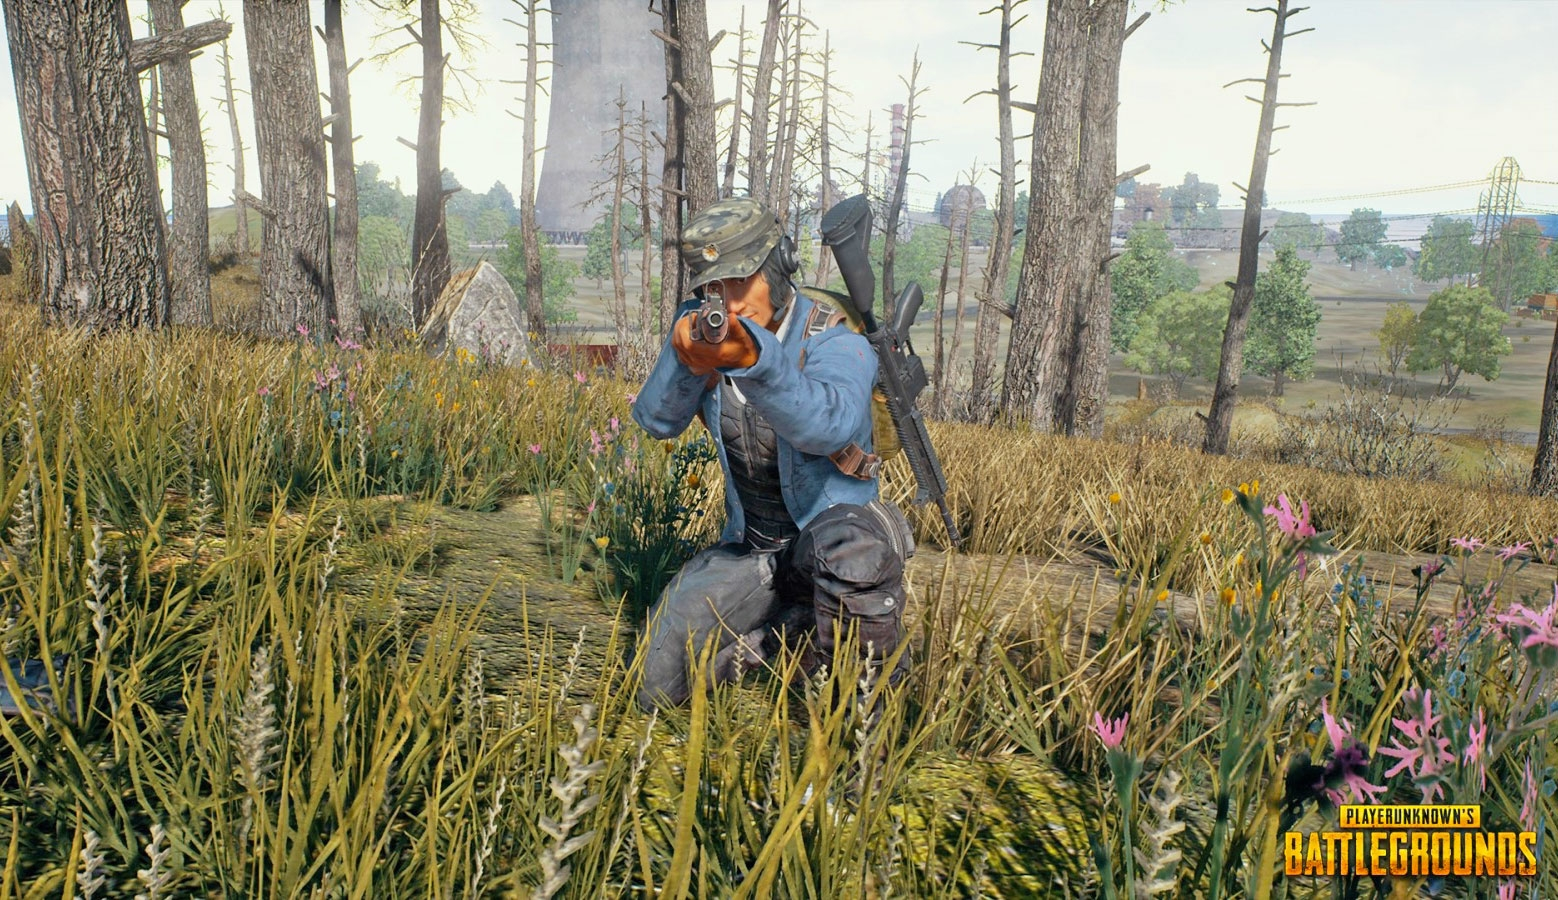 'PUBG' console version will run at 60 fps on Xbox One X | DeviceDaily.com